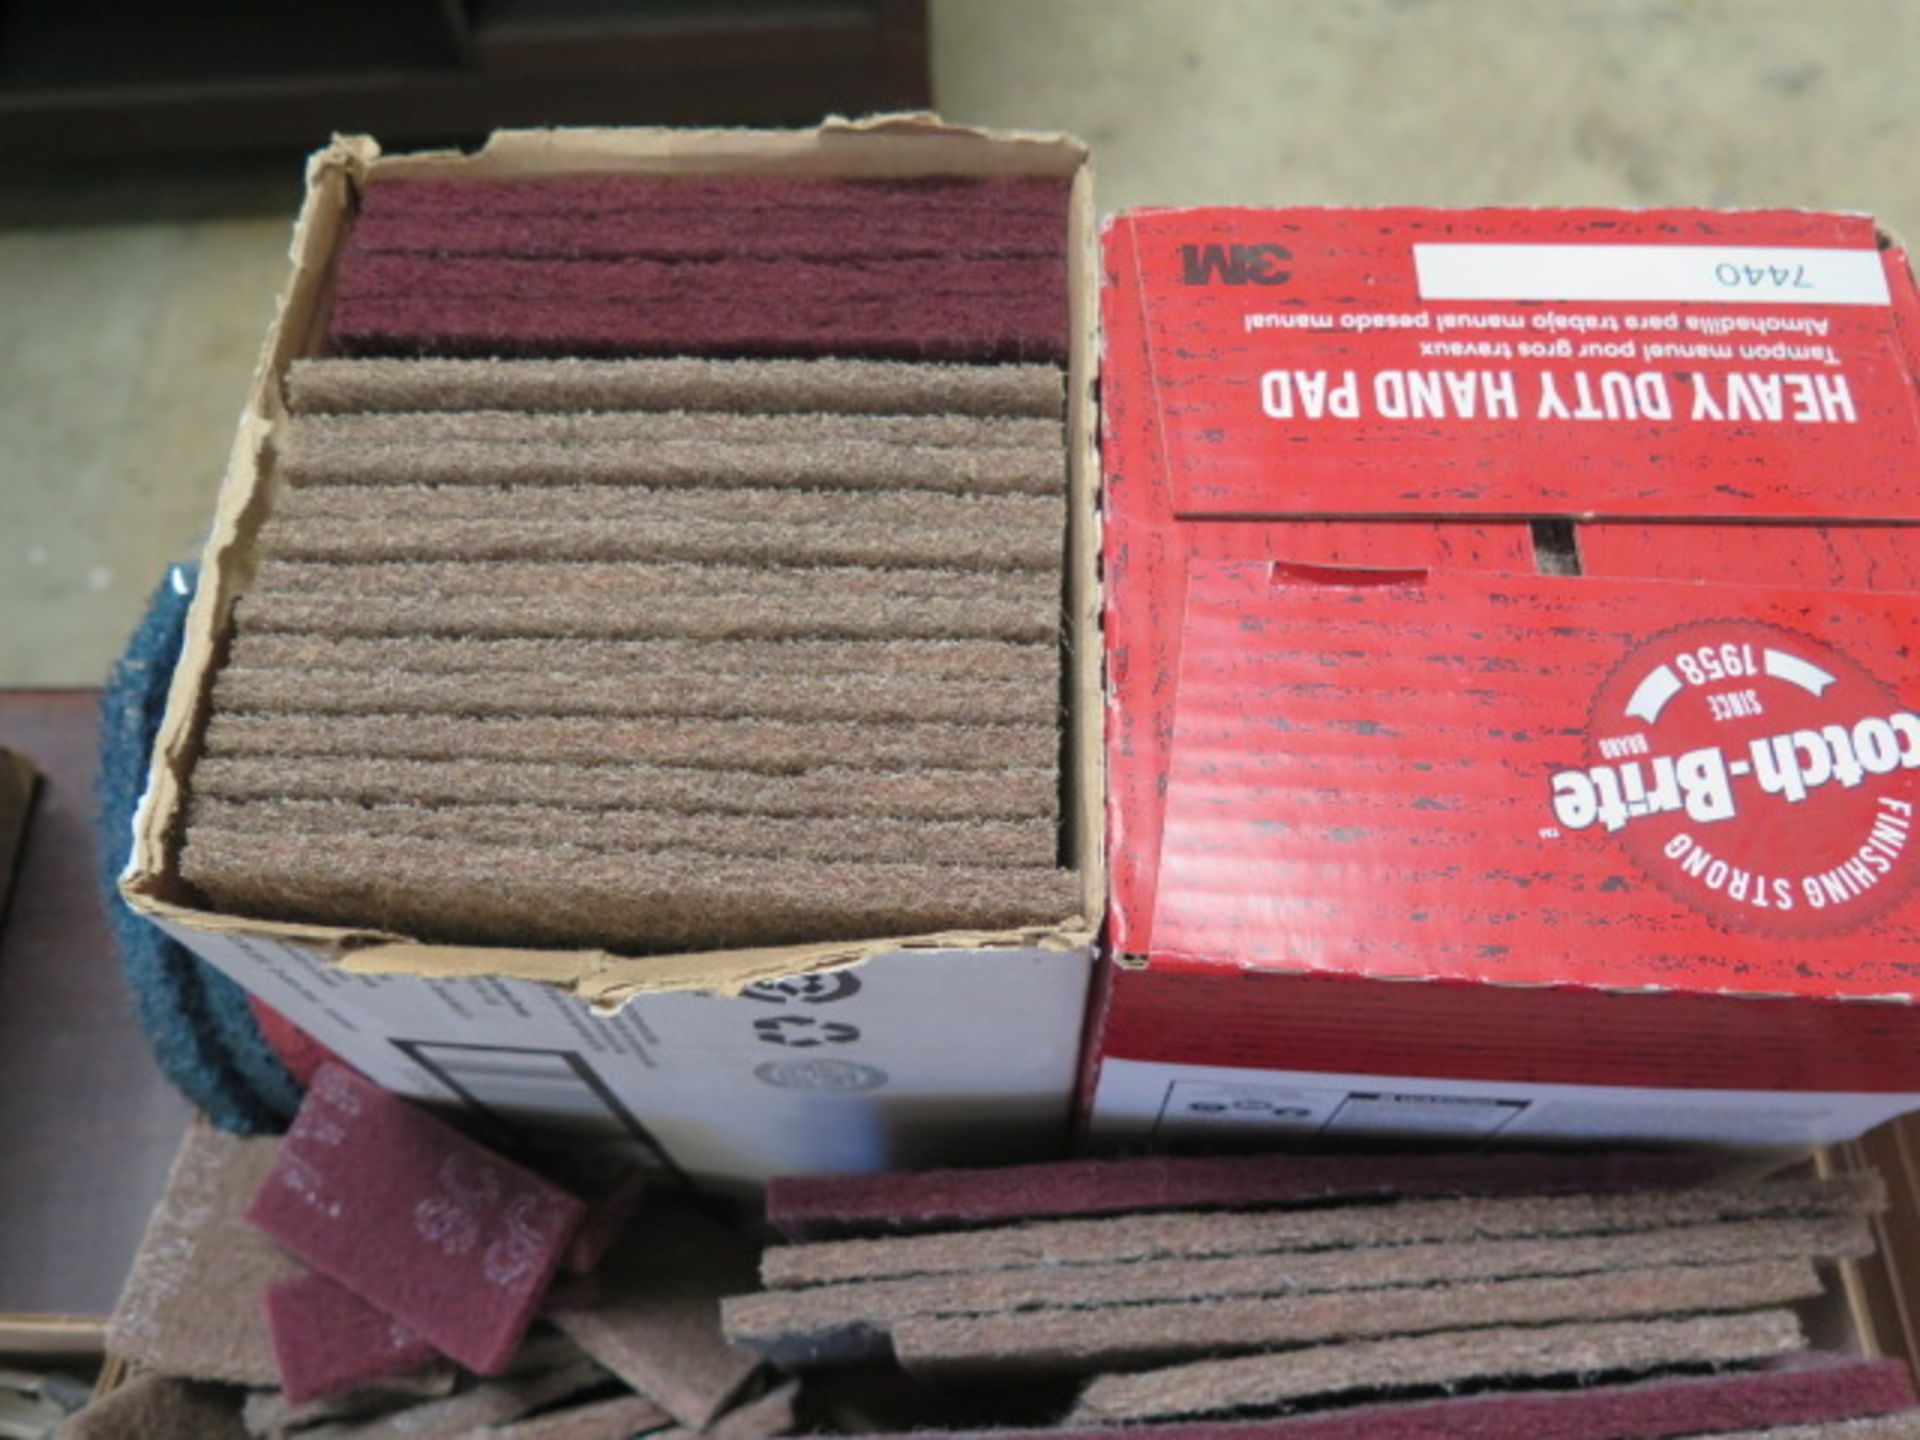 ScotchBrite Pads and Sand Paper (SOLD AS-IS - NO WARRANTY) - Image 2 of 4